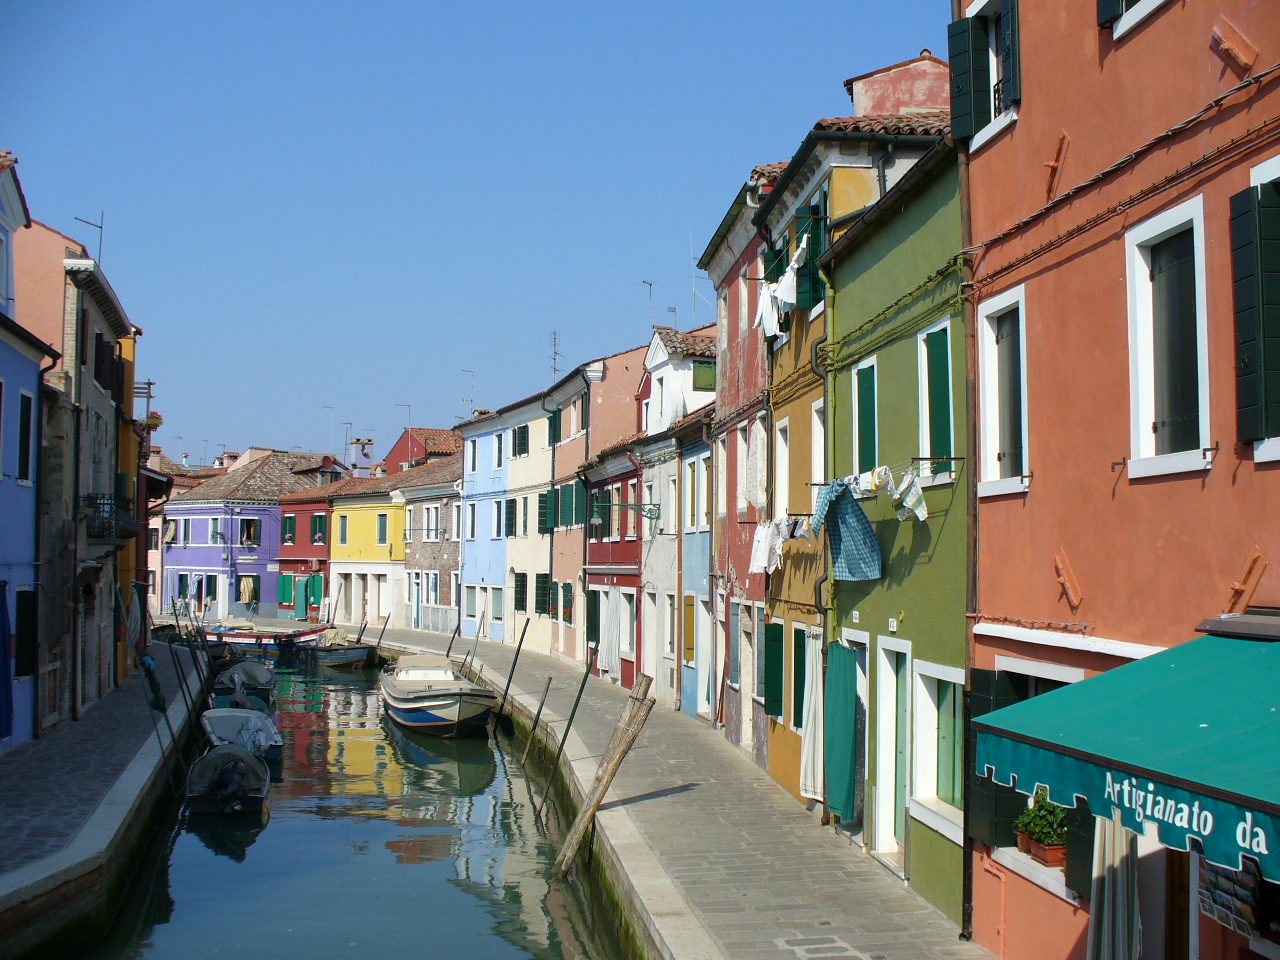 burano | Euro Palace Casino Blog